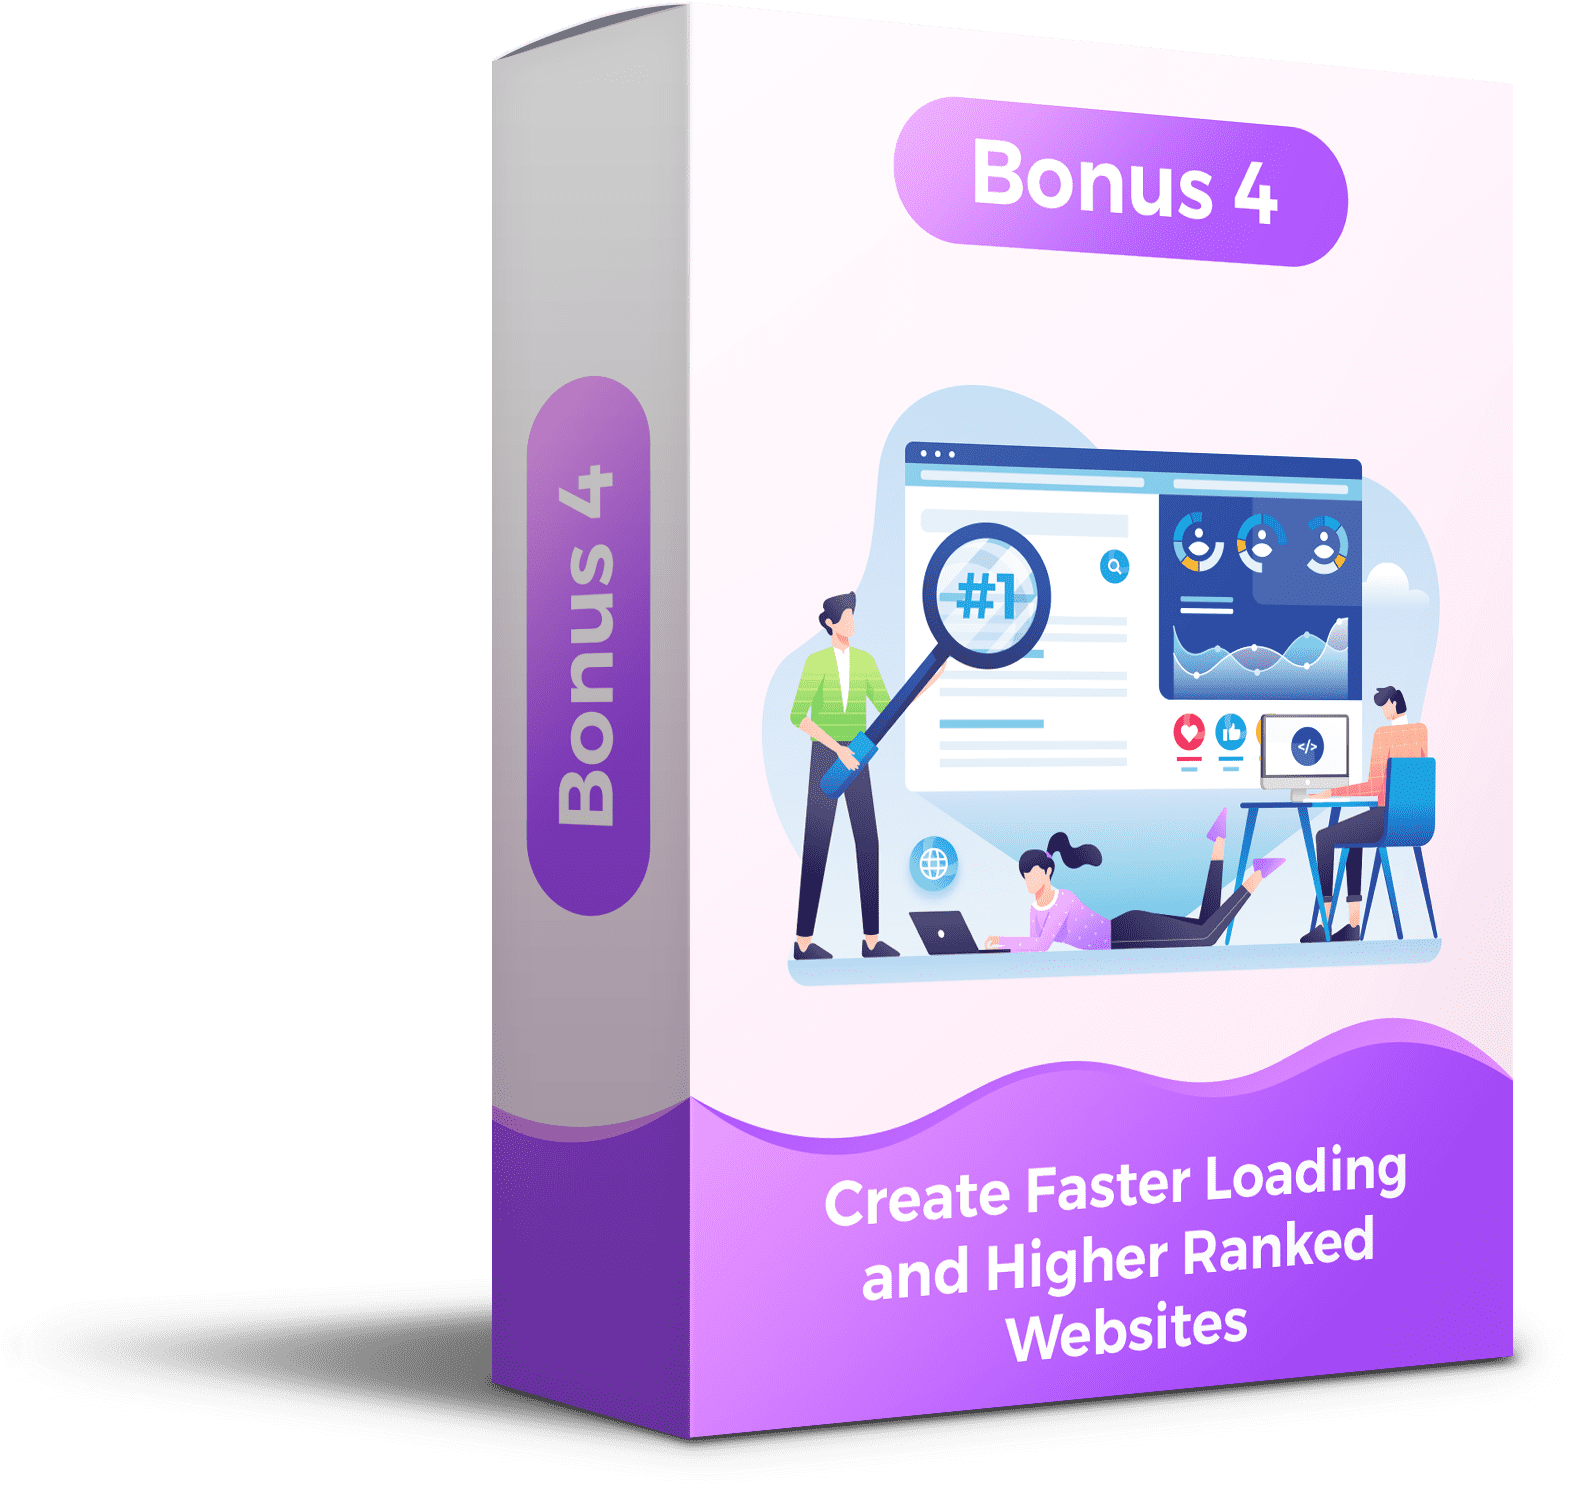 Create Faster Loading And Higher Ranked Websites